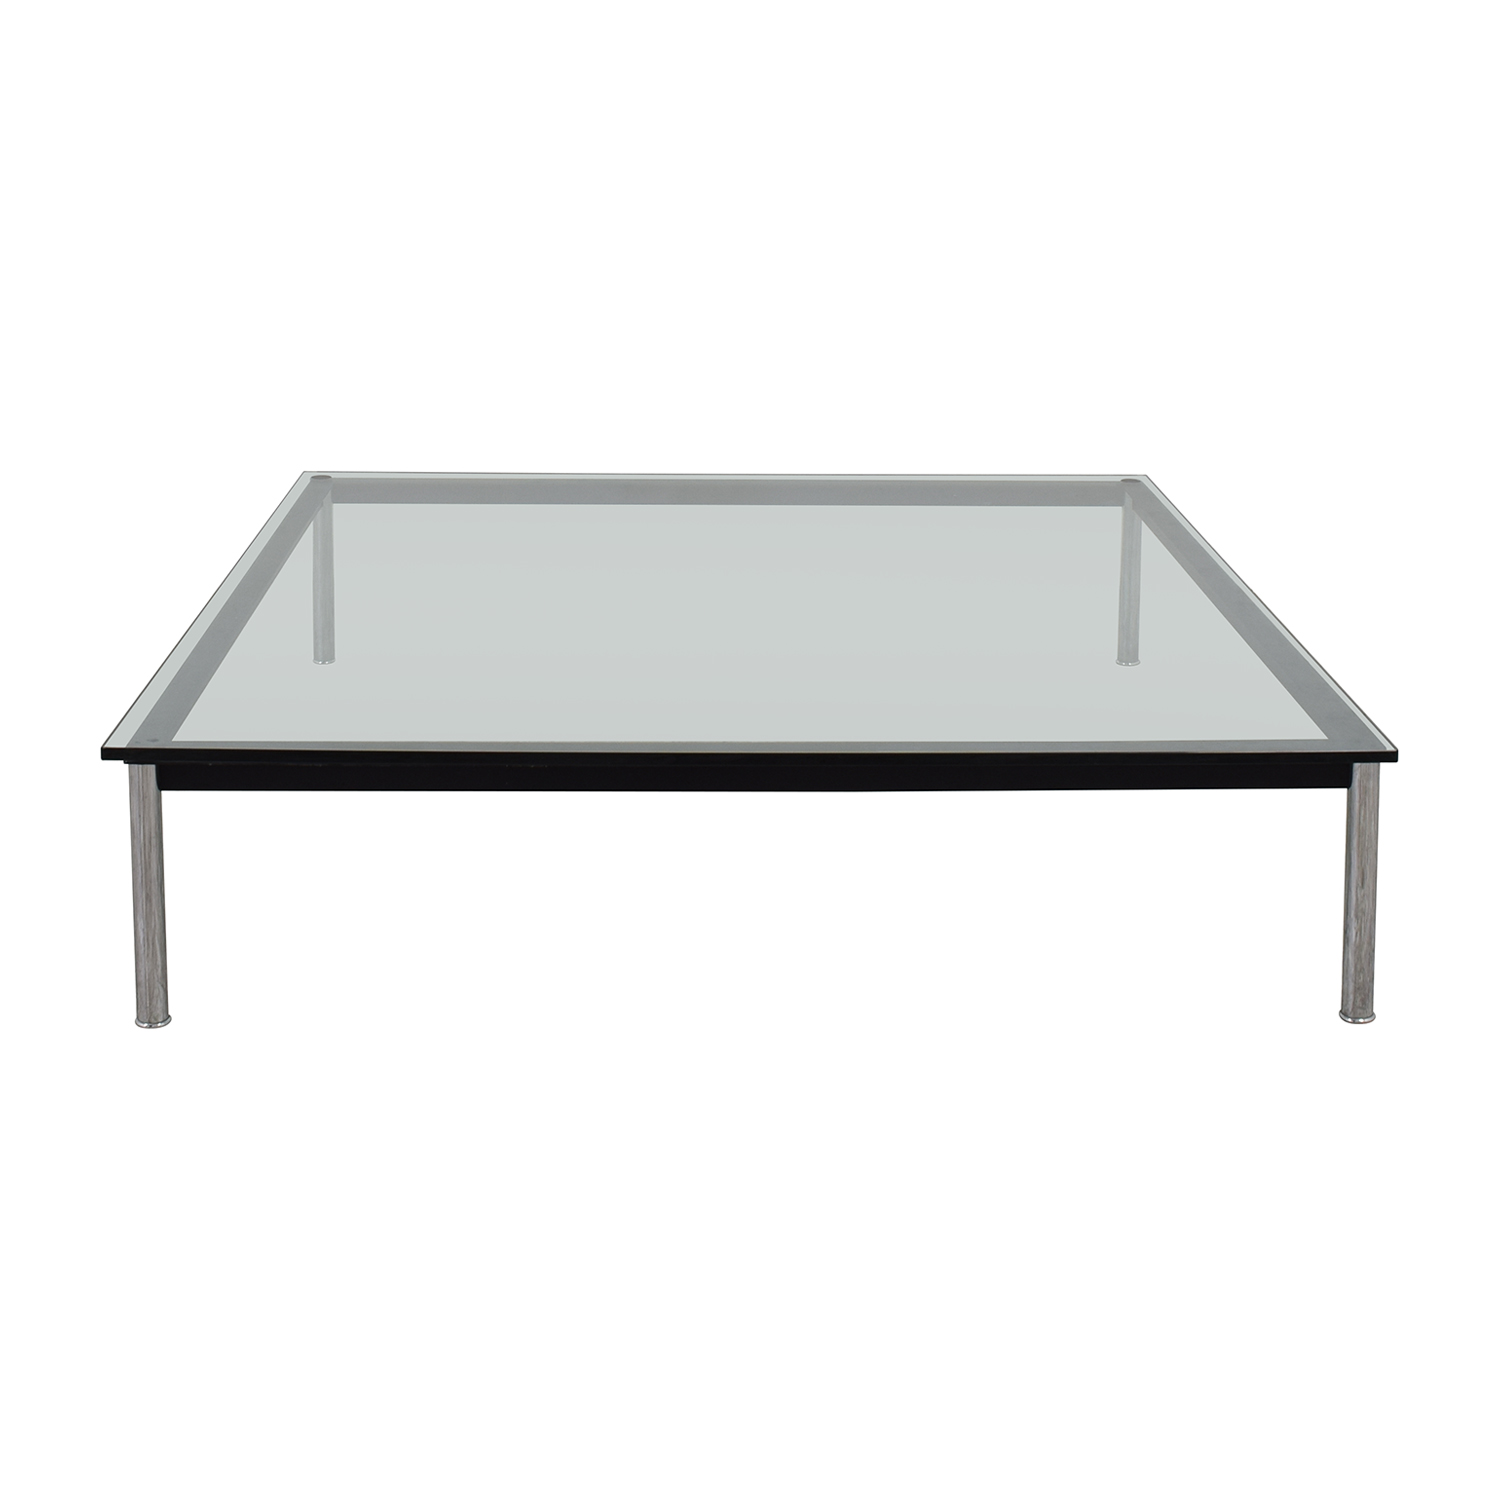 shop B & B Italia Nickel and Glass Coffee Table B & B Italia Tables